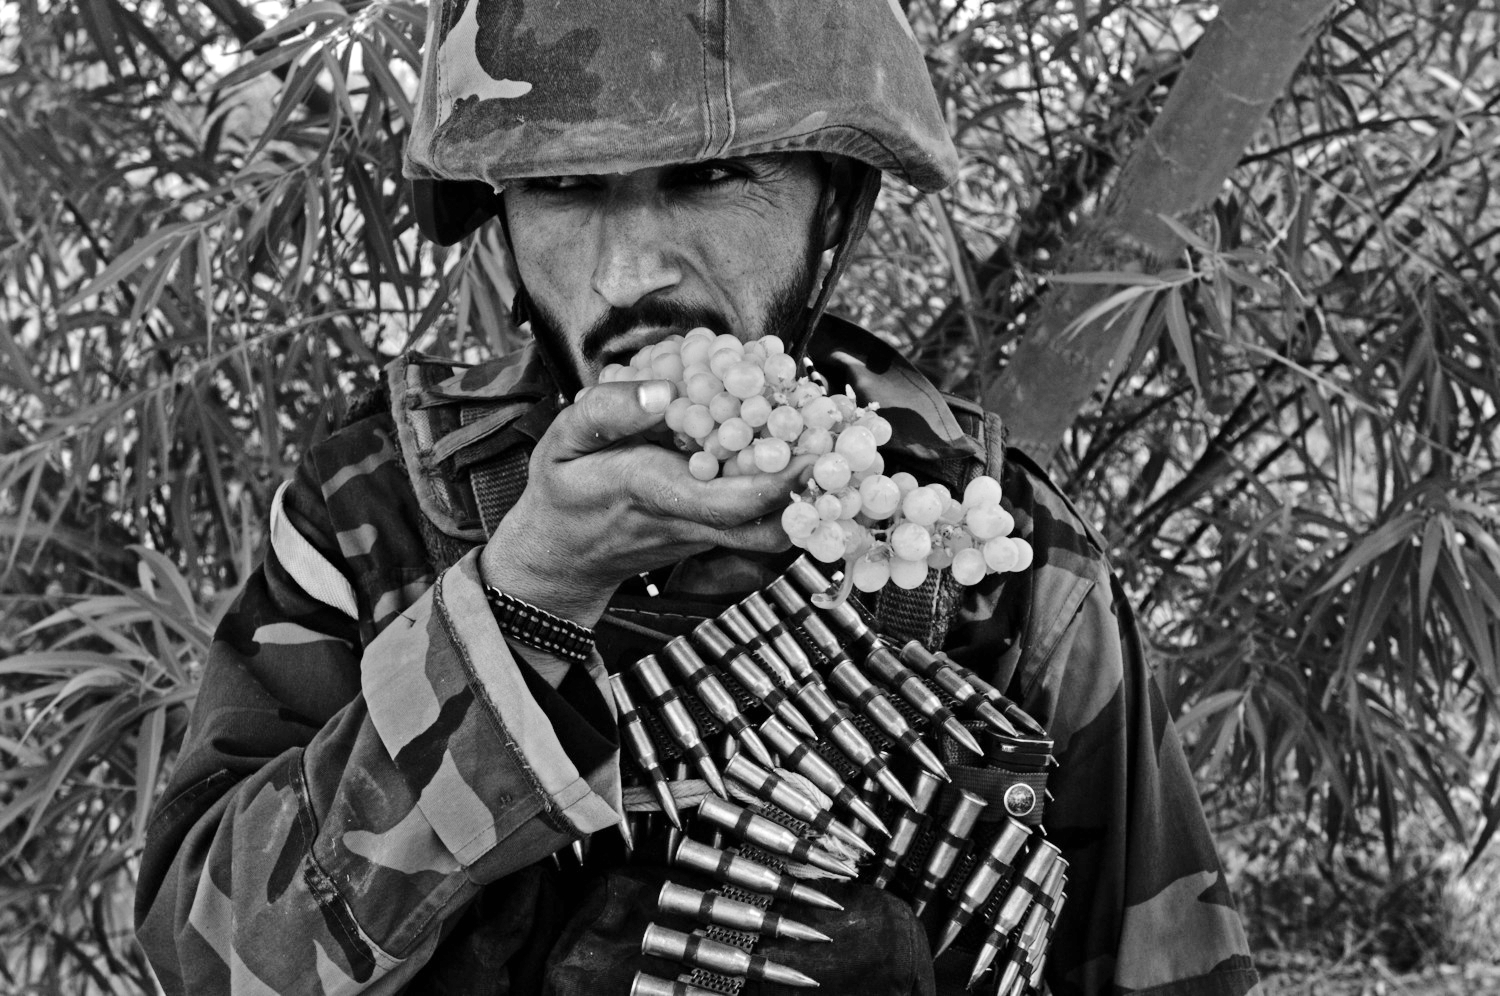 An Afghan soldier eats grapes during a patrol in theZhari District, Kandahar Province, Afghanistan.July 12, 2008  ©Louie Palu/ZUMAPRESS.com